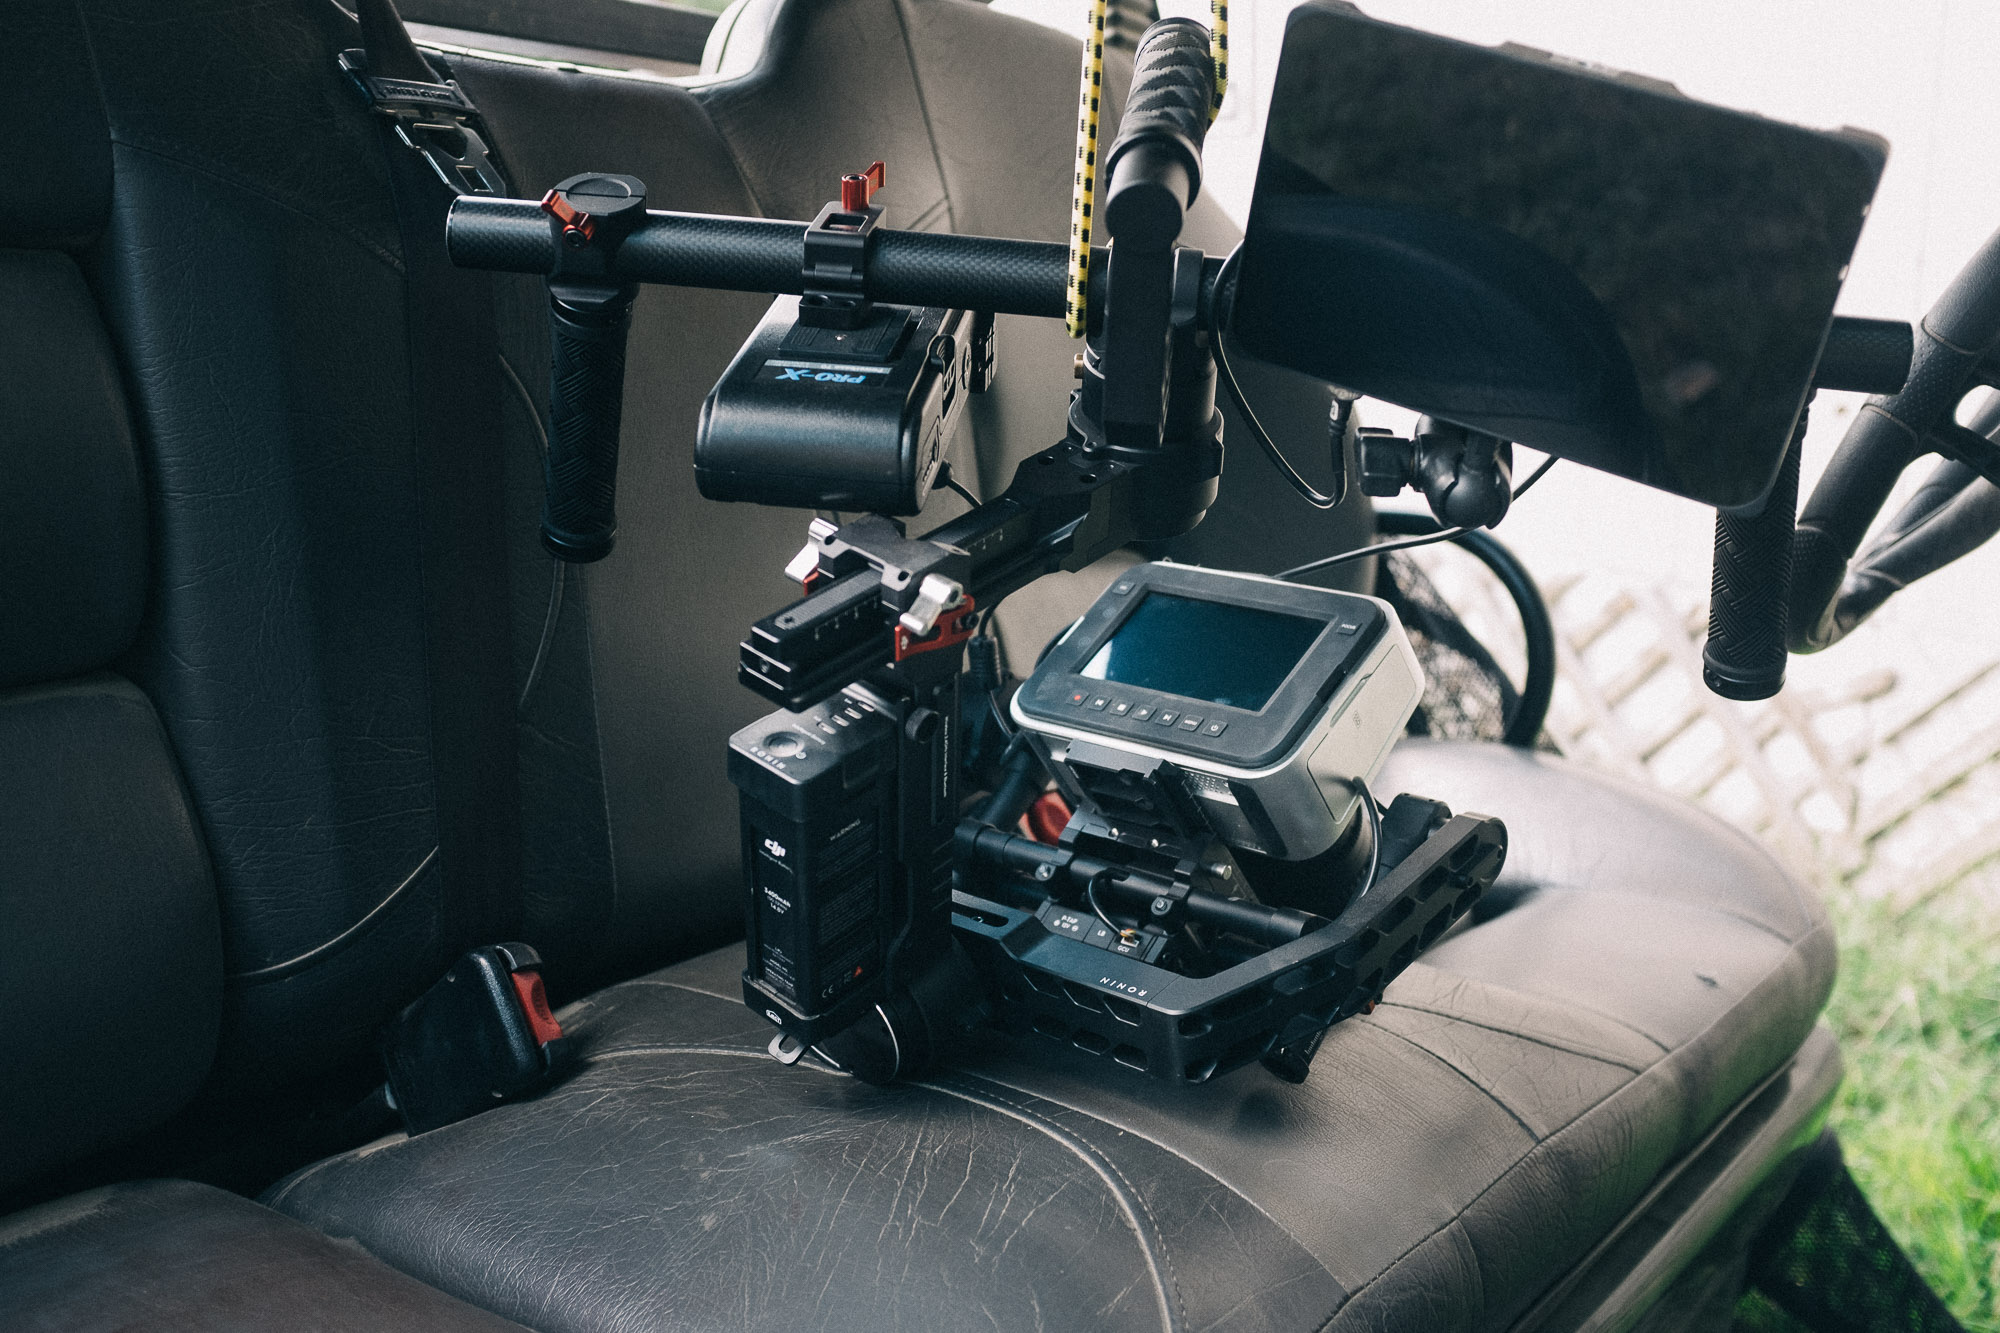 We rigged the Blackmagic Cinema Camera on the DJI Ronin to the UTV with bungee cords. Amazing stabilization!